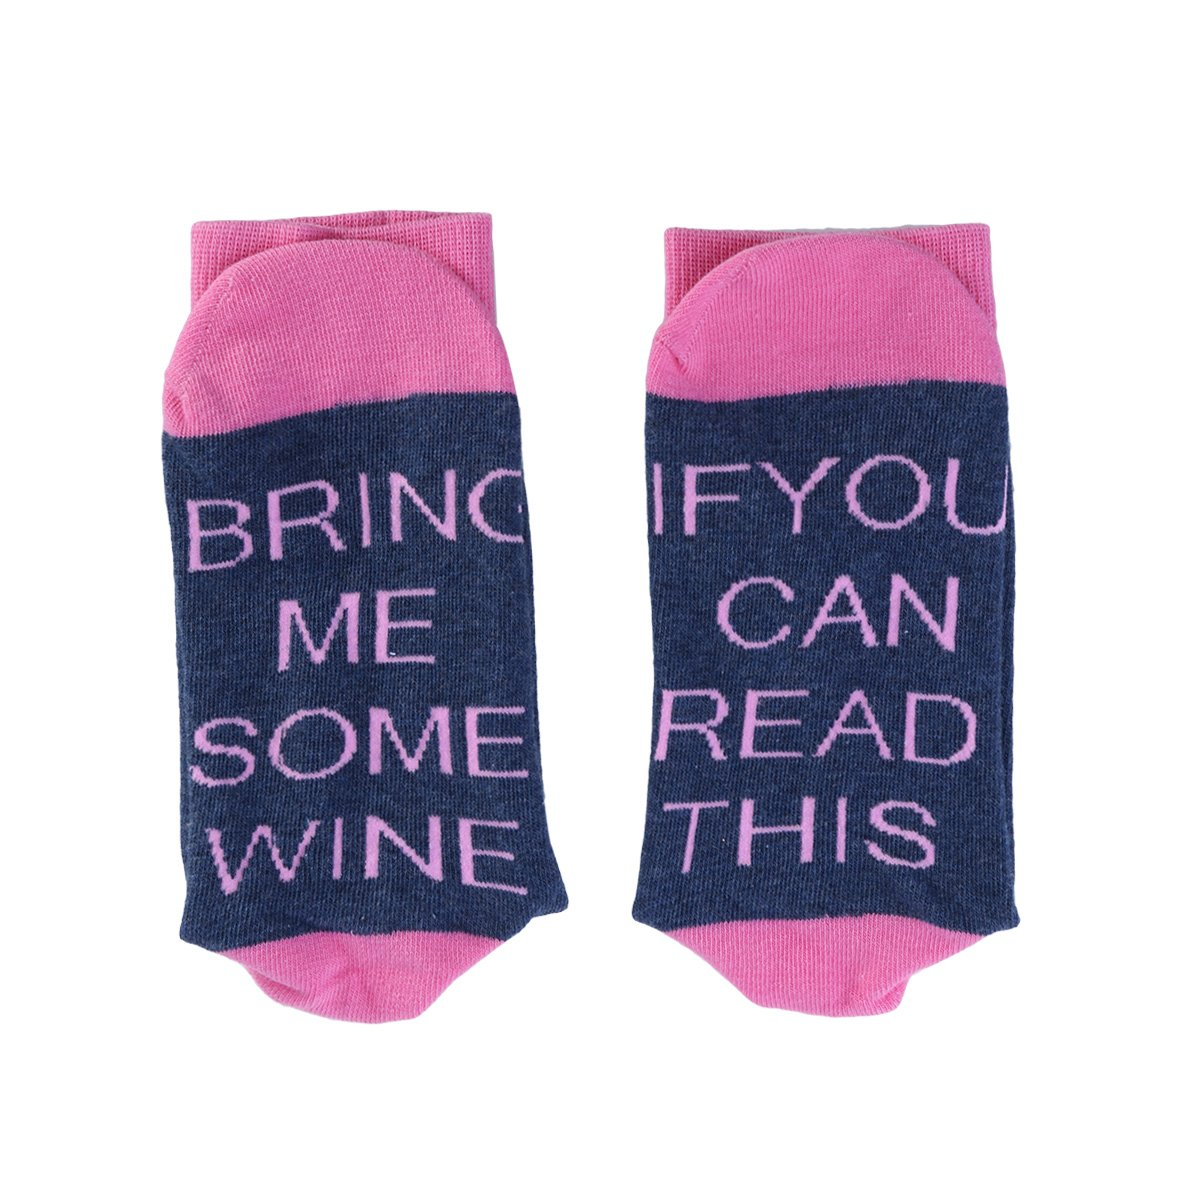 OUNONA Wine Socks Cotton ''Bring Me Some Wine'' Socks,Christmas Gift for Wine Lovers, Birthdays,Mothe,Wife,Funny Wine Party for Women(Blue and Pink)